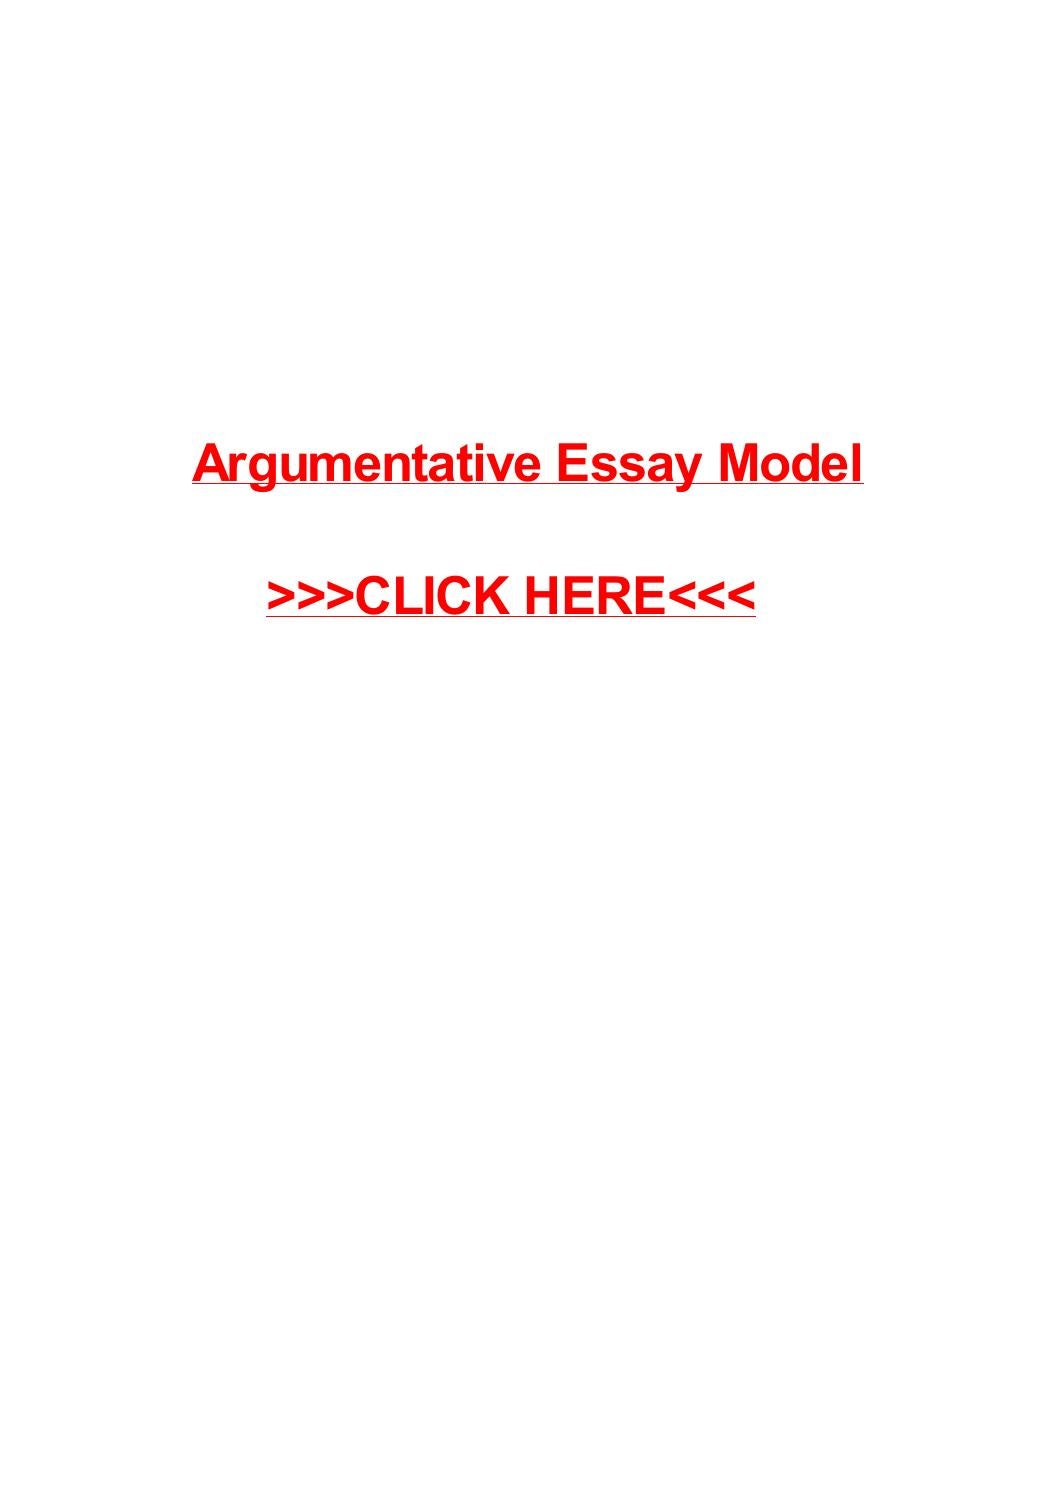 Literary Essay Thesis Examples  Argument Essay Topics For High School also Essay On My Mother In English Argumentative Essay Model By May Pilon  Issuu Essay About Healthy Diet